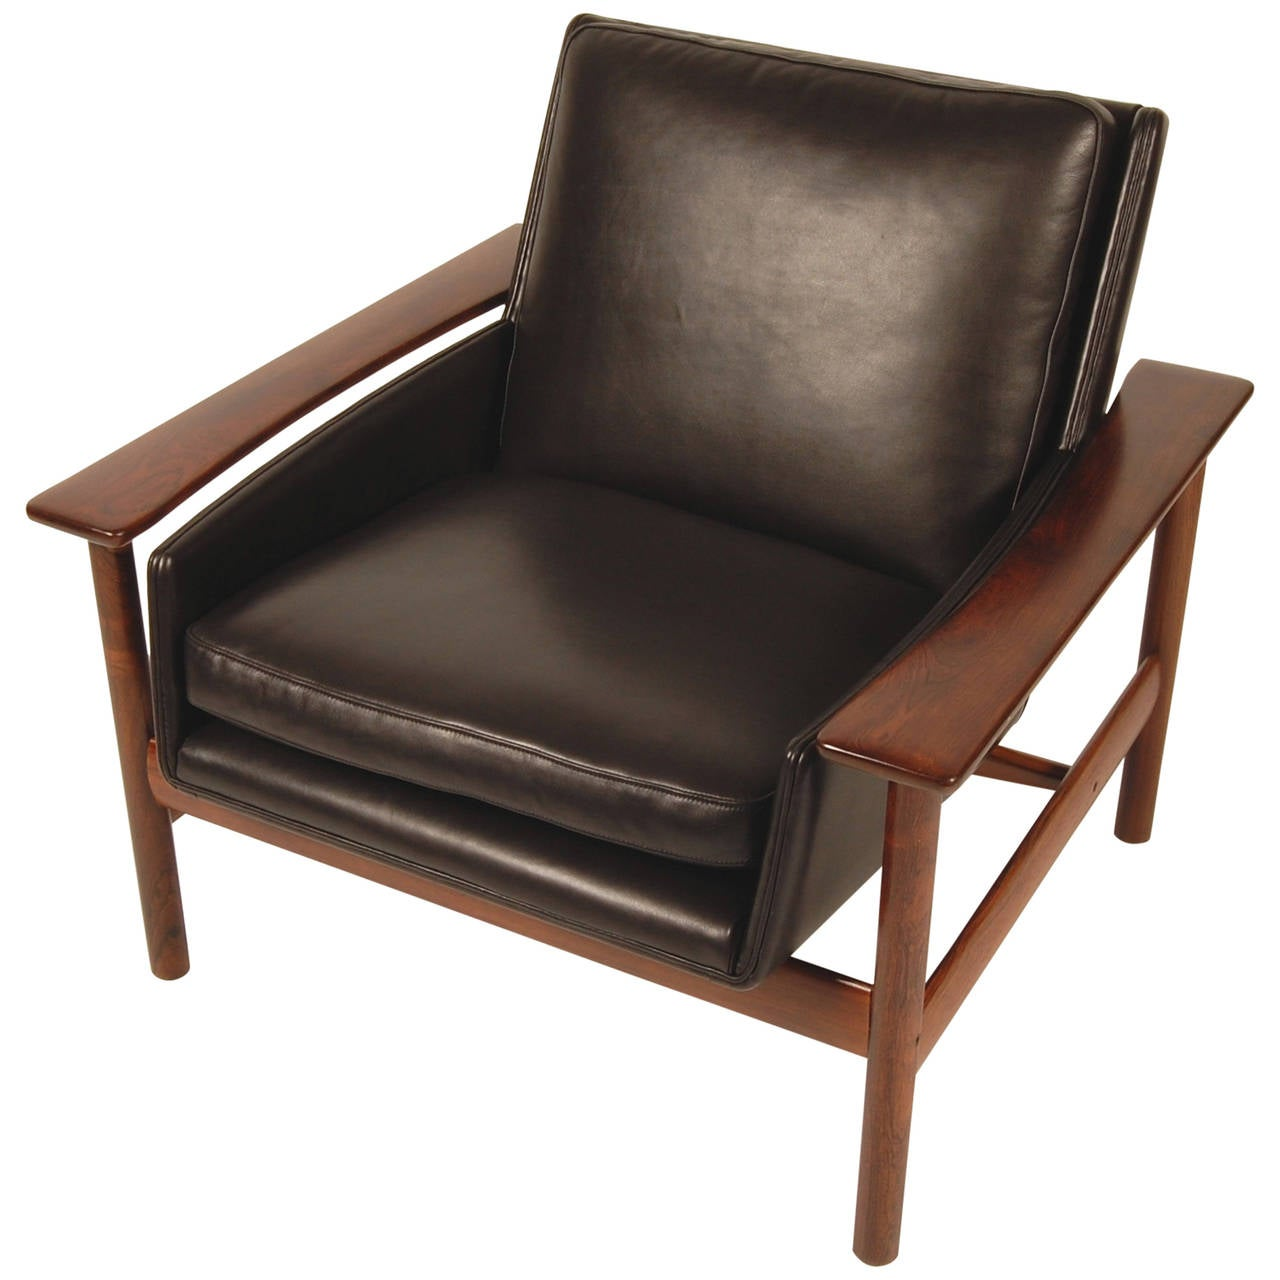 Dokka rosewood and leather lounge chair scandinavia modern for Modern leather club chairs